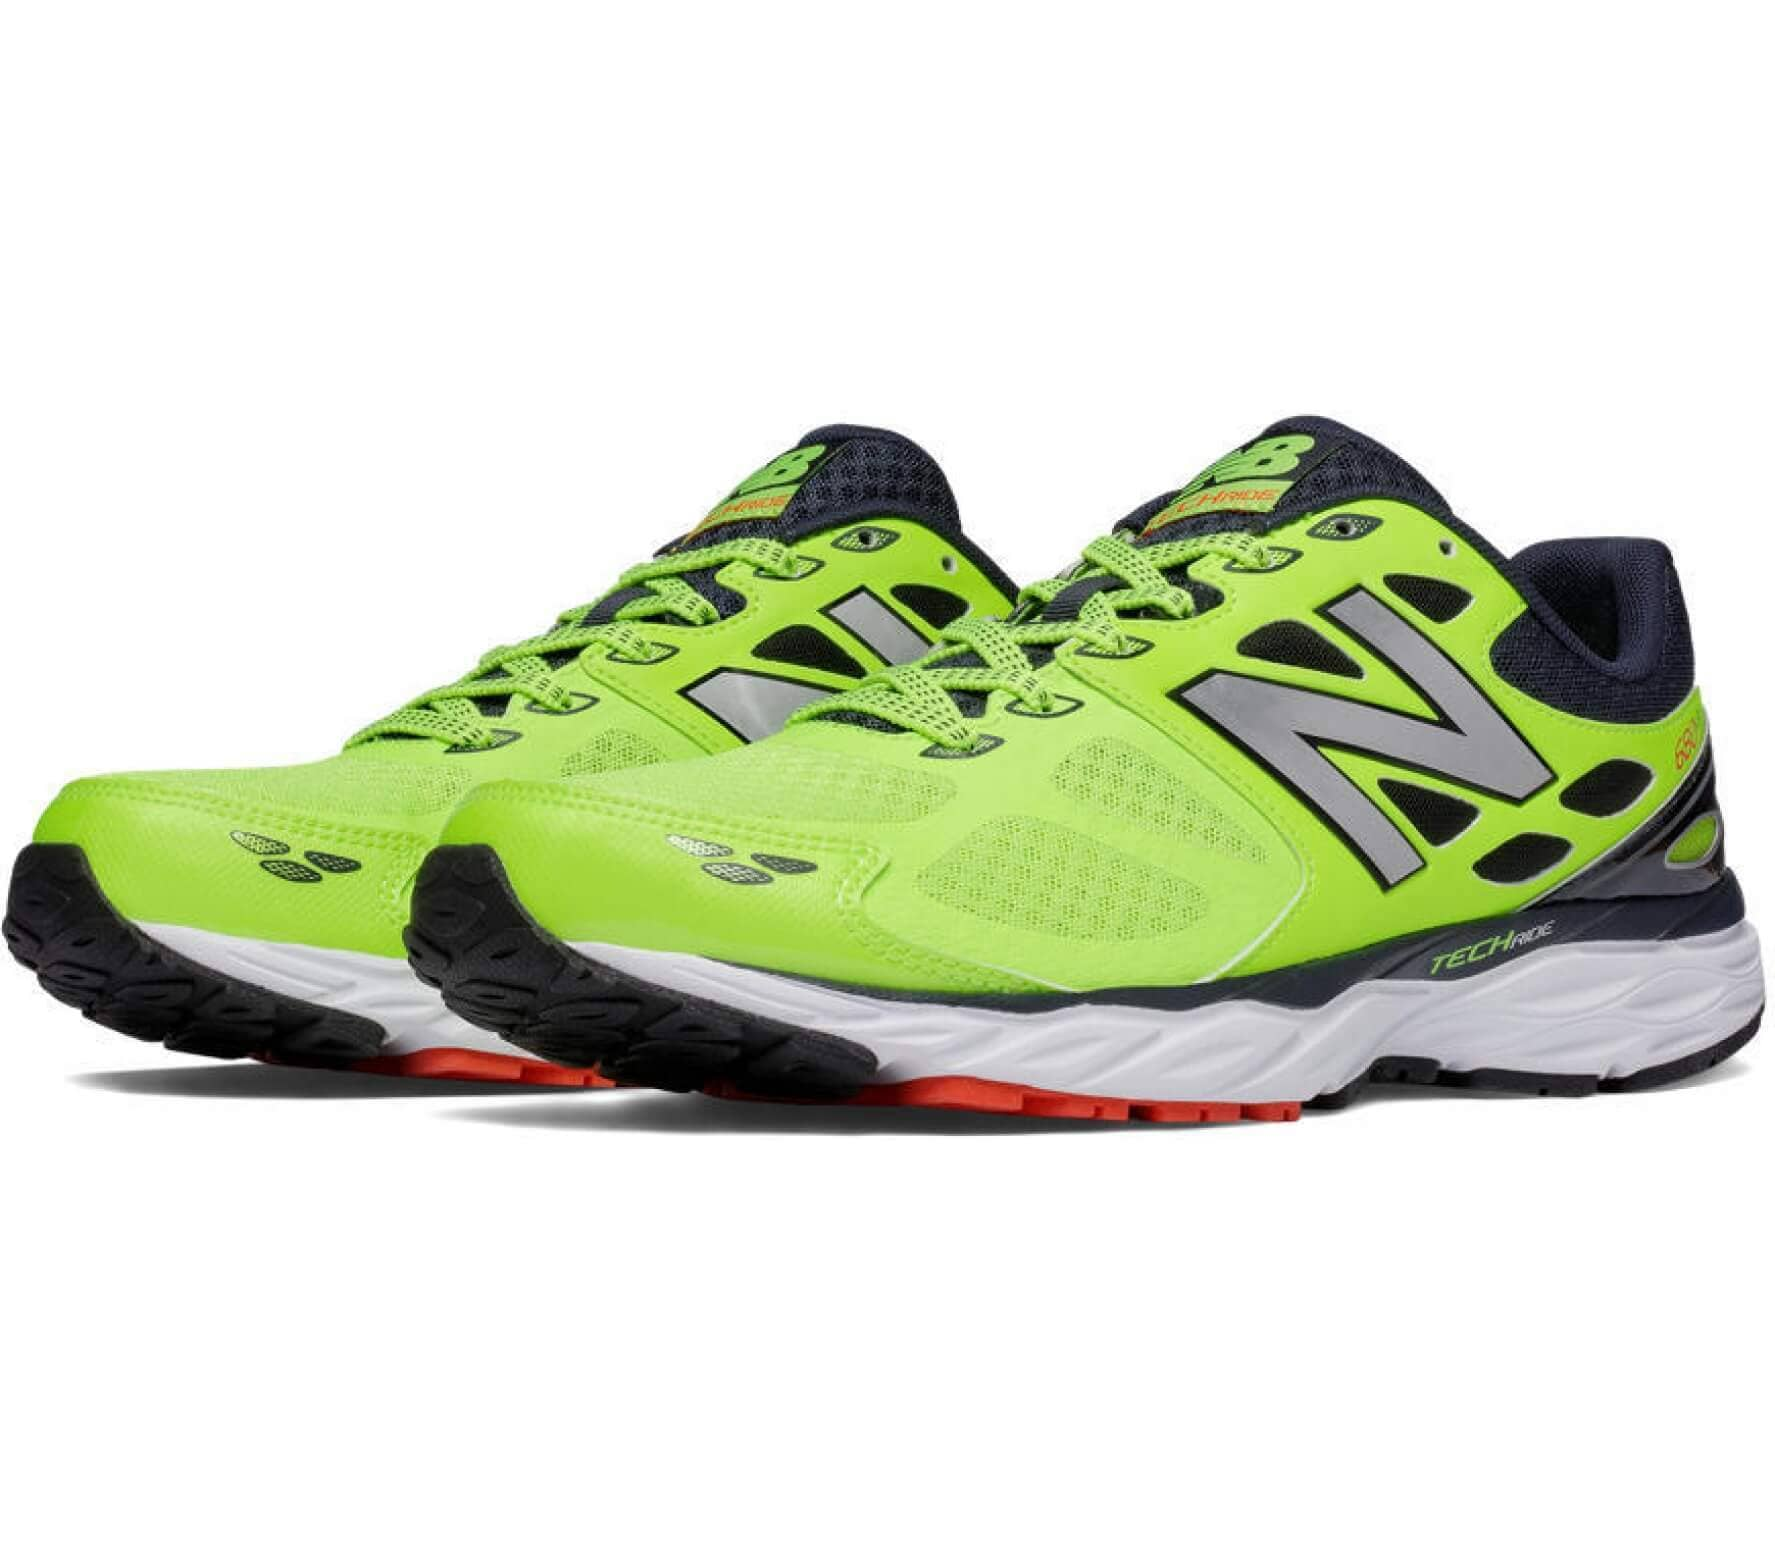 New Balance 680 D V3 men's running shoes Heren